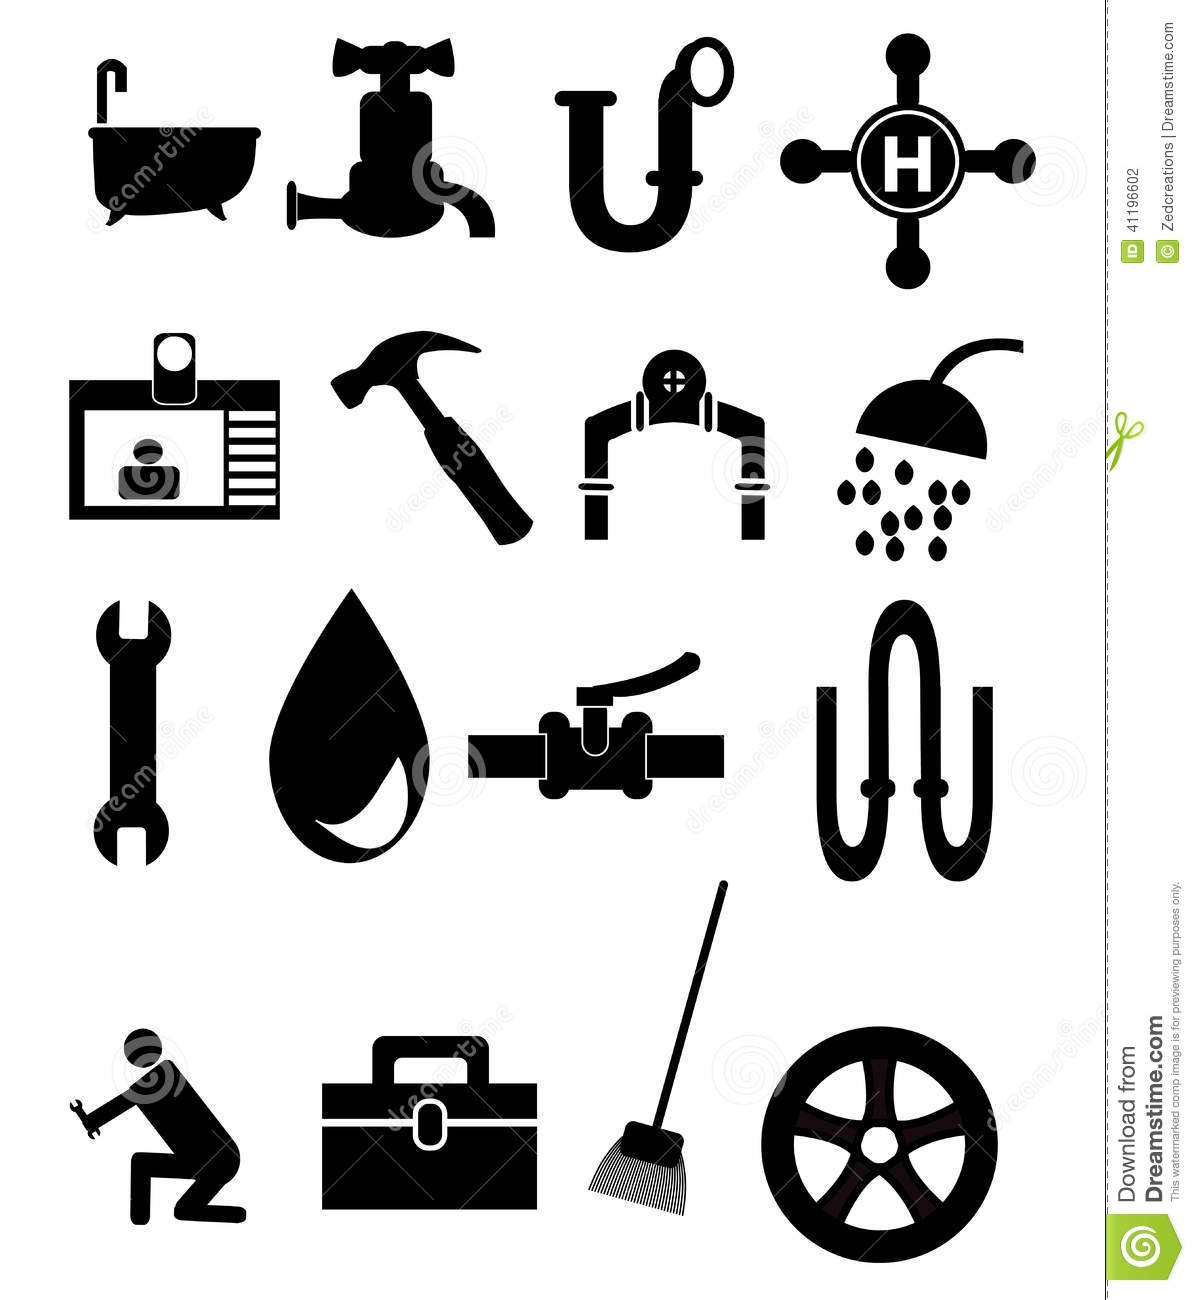 Plumbing Icon Set Stock Vector - Image: 41196602